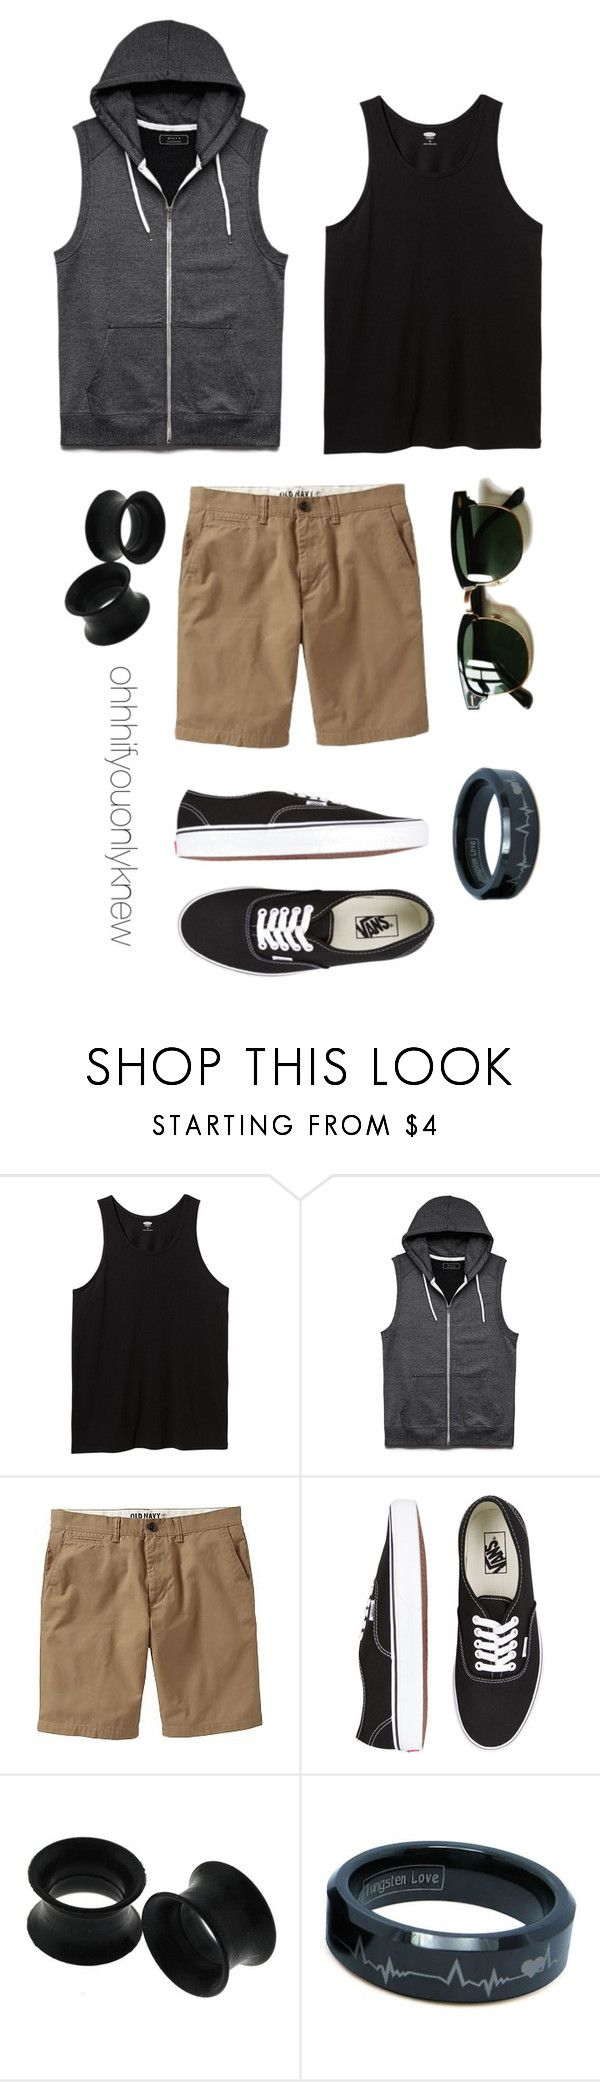 """Untitled #234"" by ohhhifyouonlyknew ❤ liked on Polyvore featuring Old Navy, 21 Men, Vans, Ray-Ban, tomboy, Lesbian, mycreations and dyke"